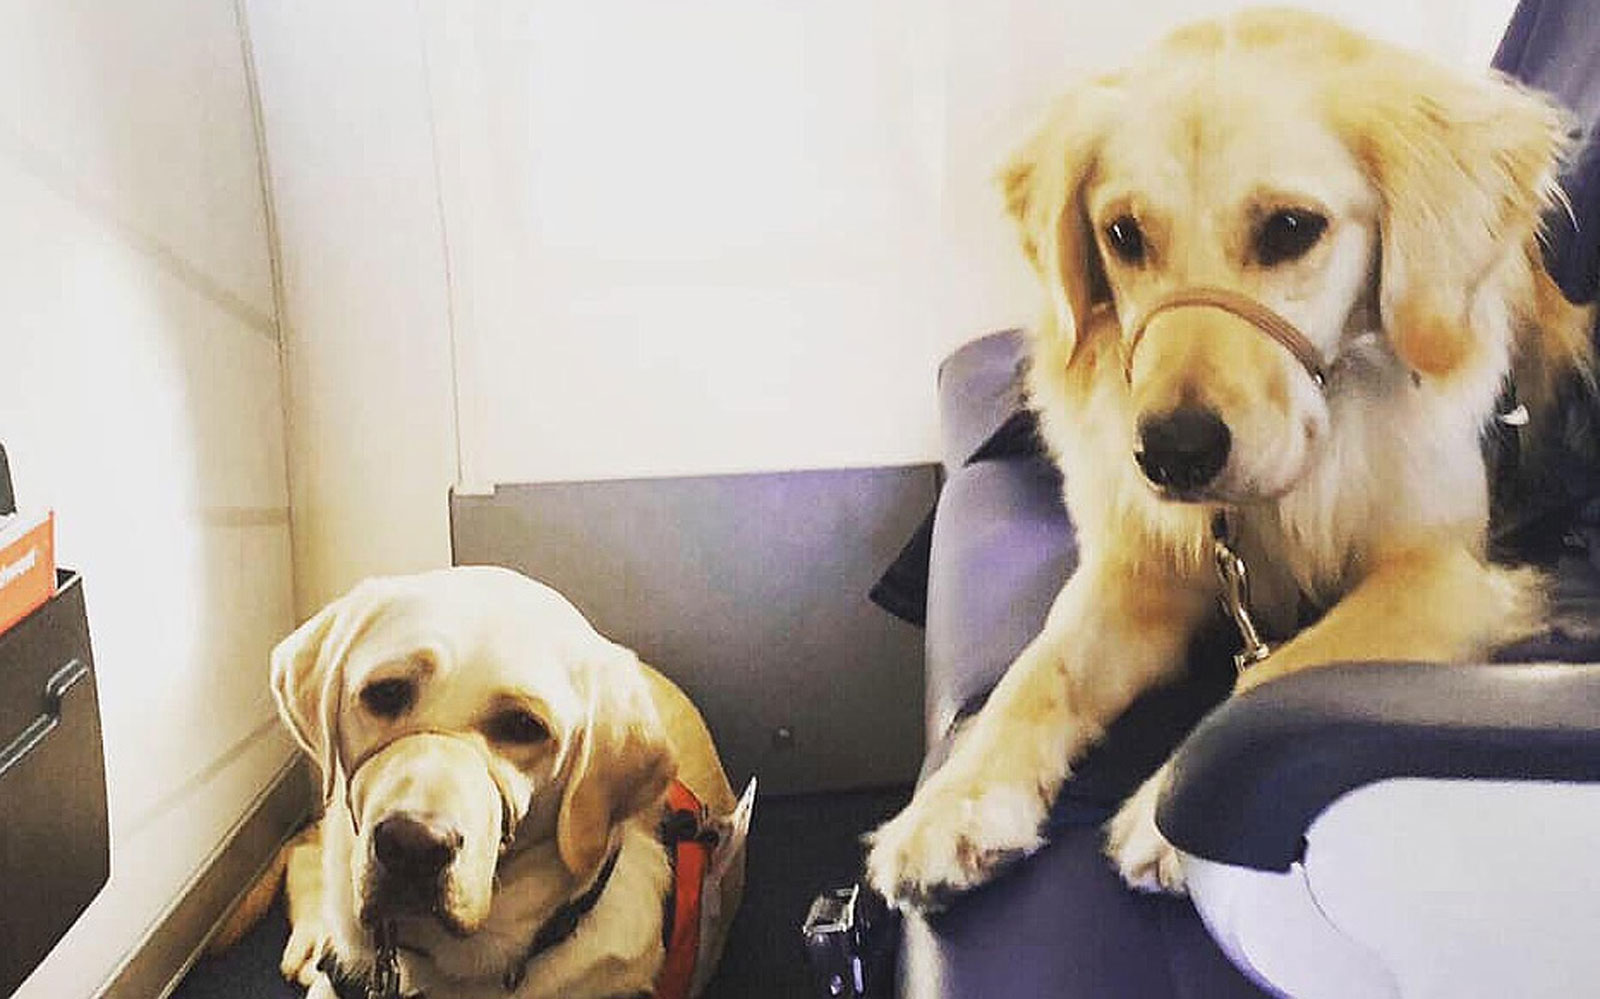 Meet the Very Good Therapy Dogs Who Flew to El Paso to Comfort Victims and First Responders